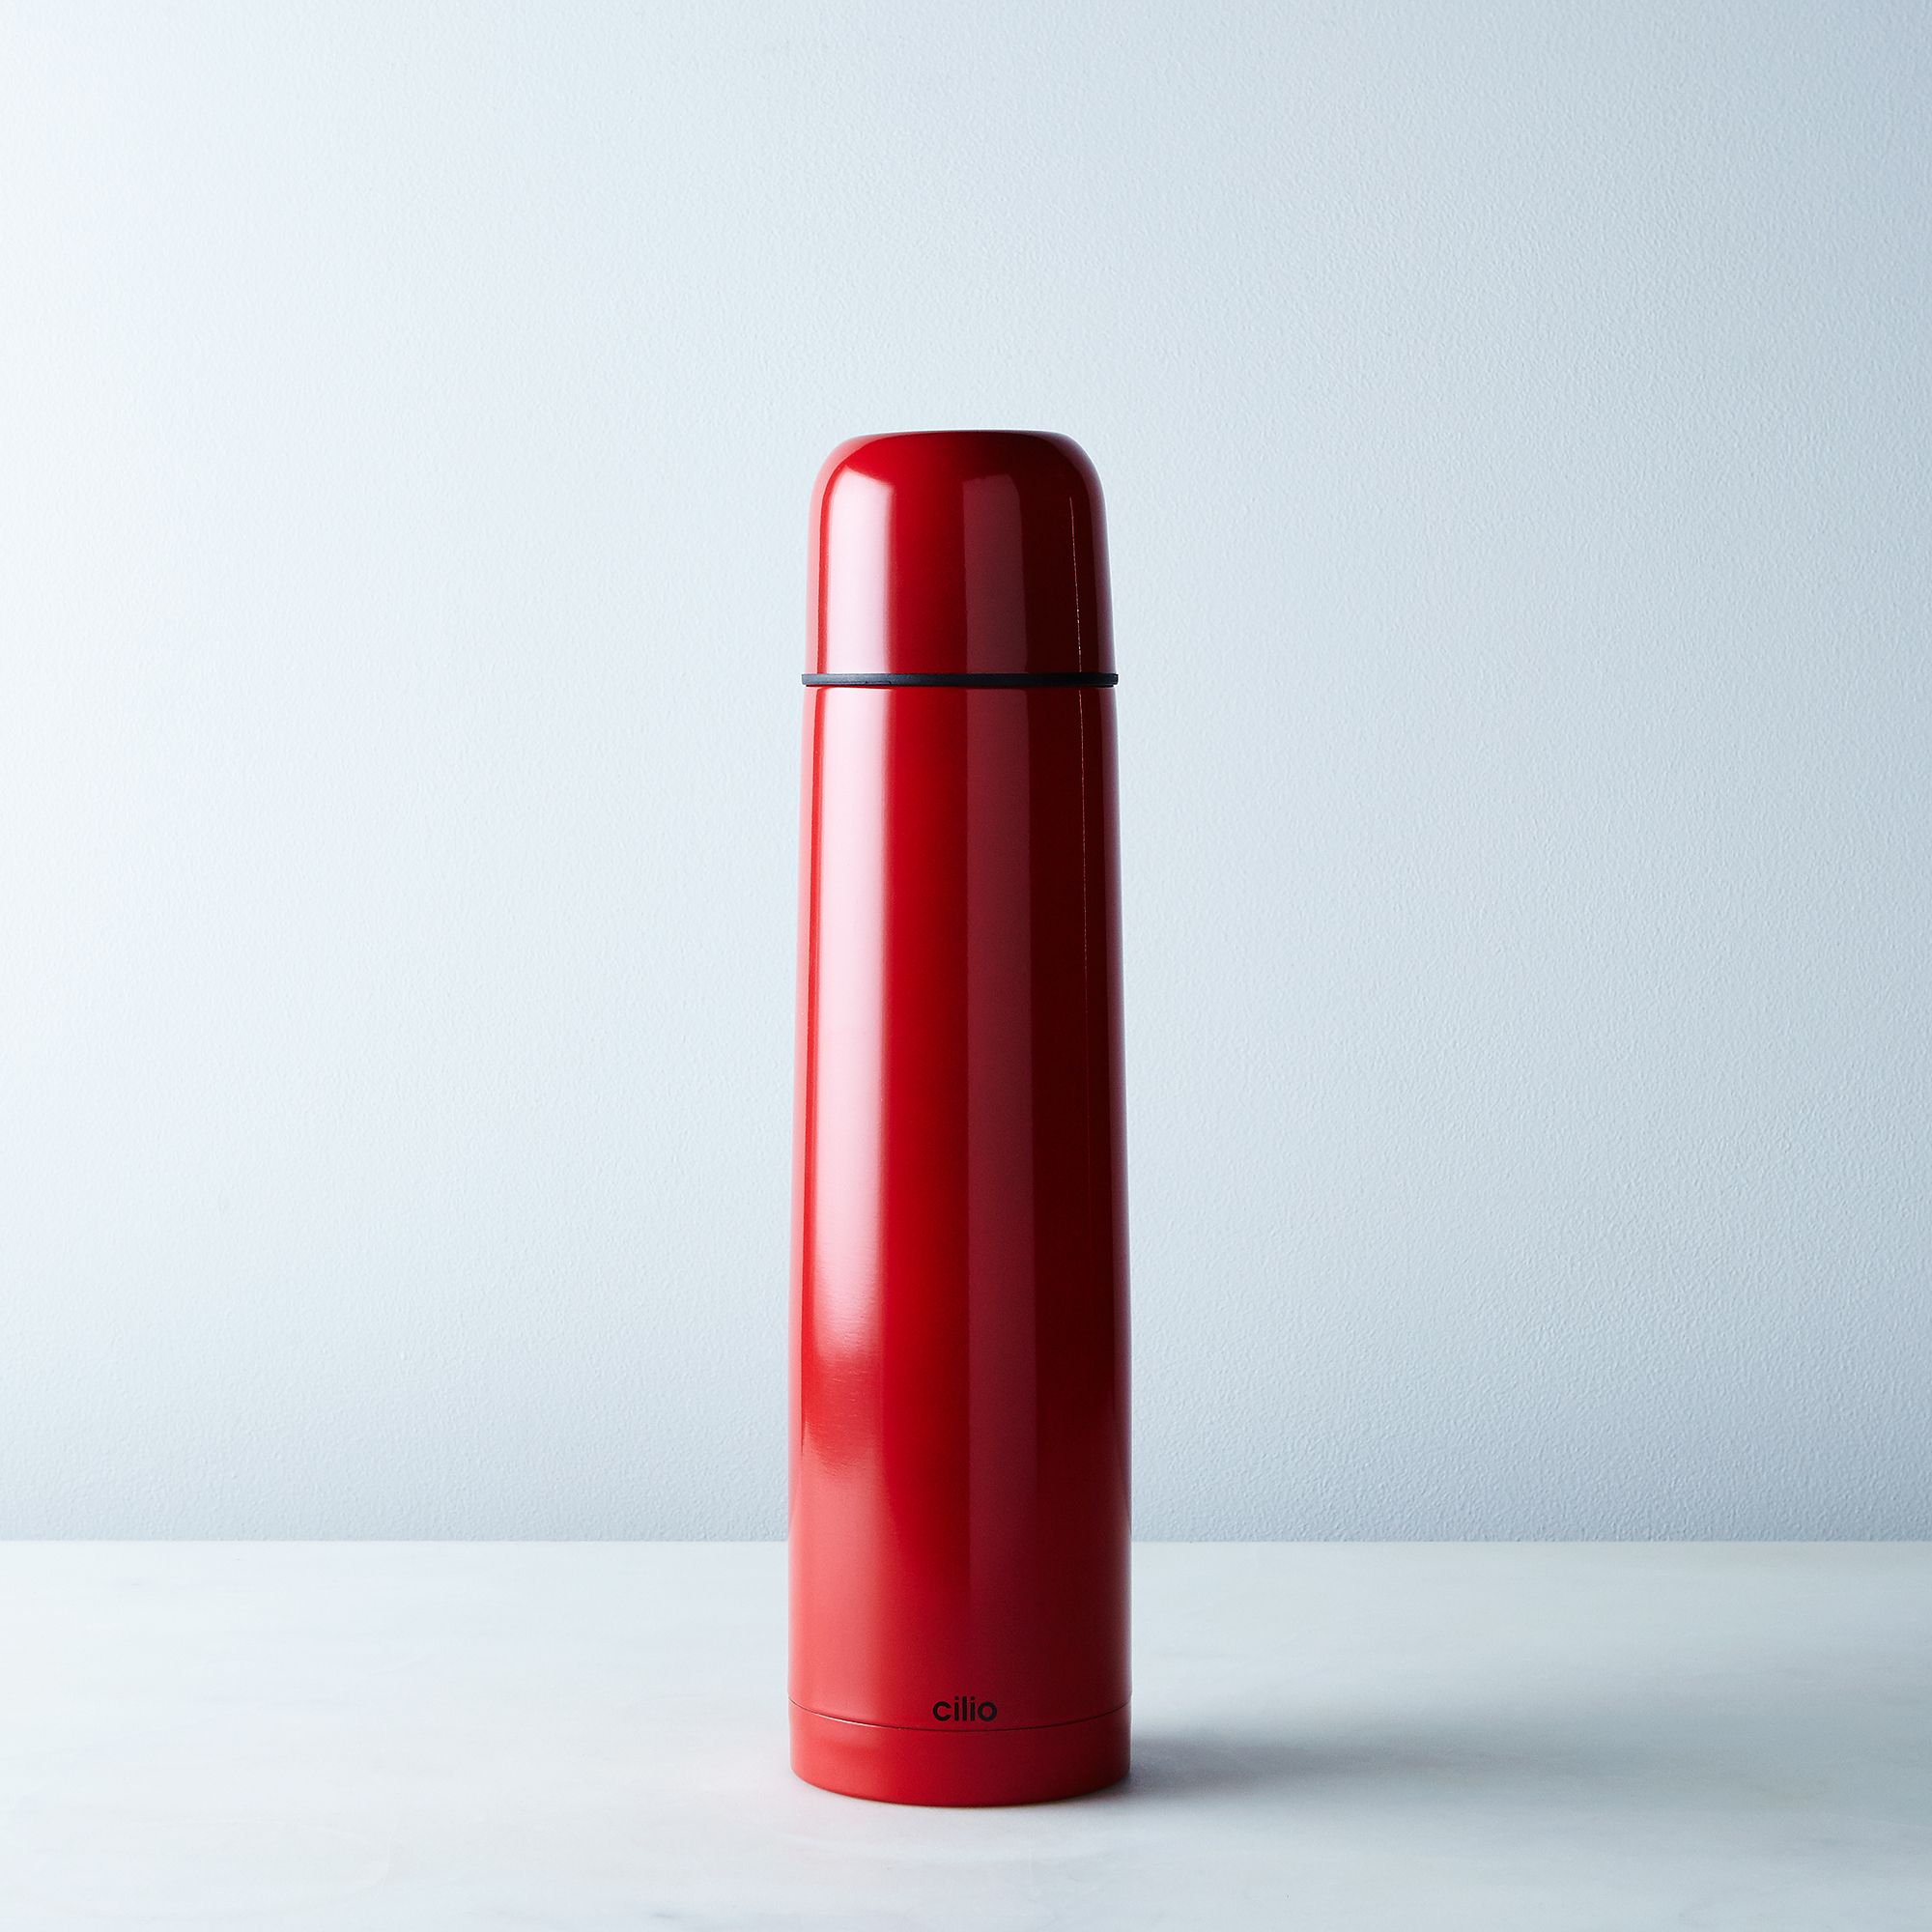 C07e9b86-a0f8-11e5-a190-0ef7535729df--2015-0729_frieling_insulated-travel-bottle_large-red_silo_rocky-luten_003